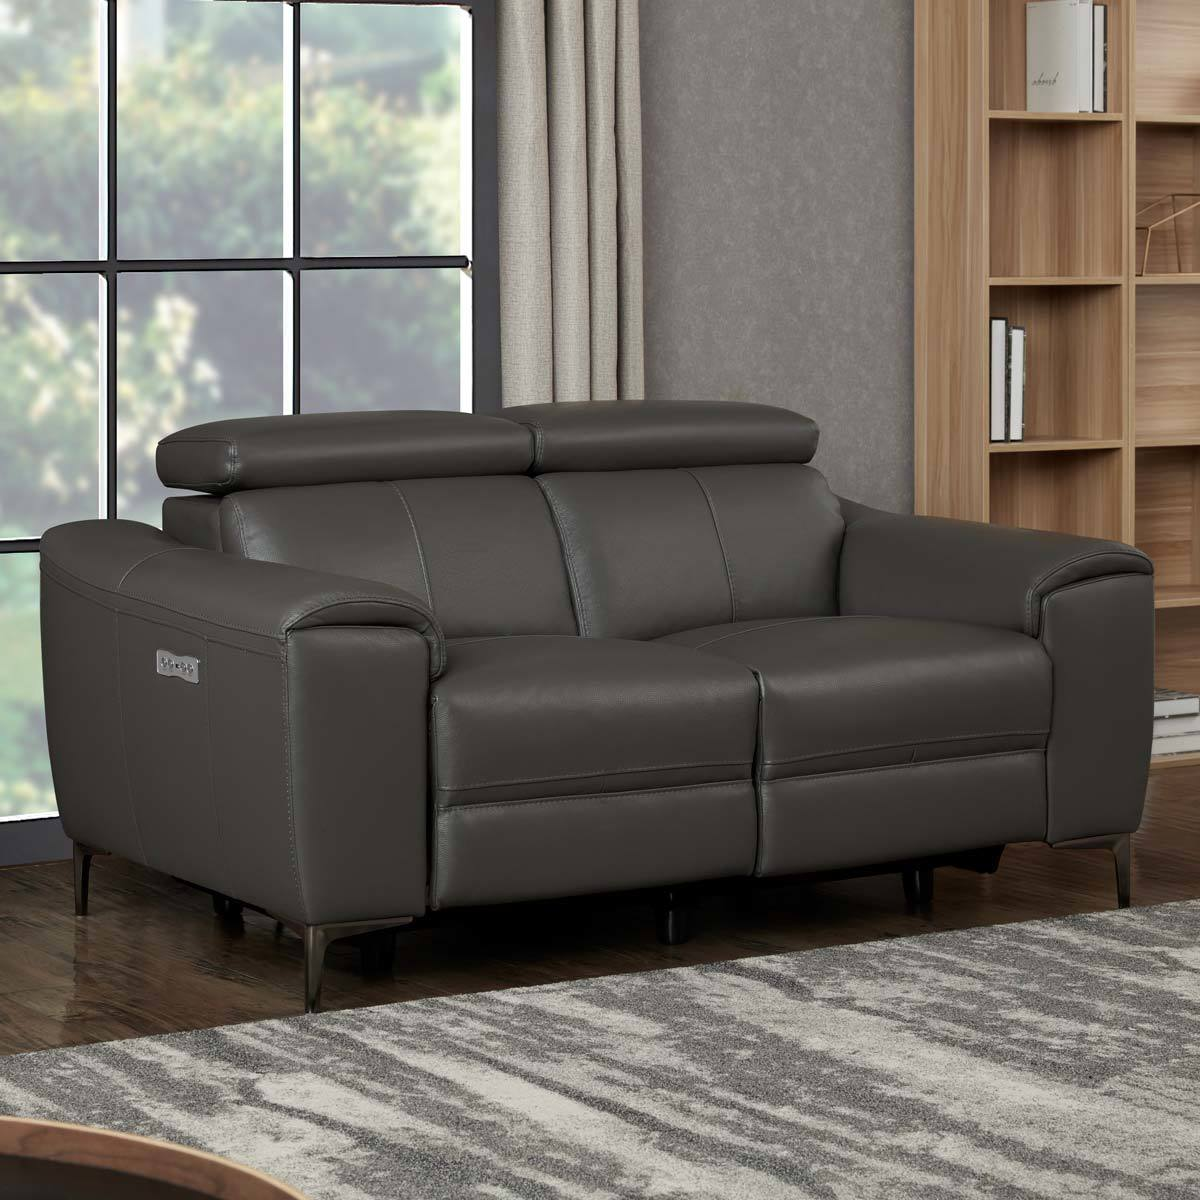 Release Cables Replacement Armchair Relax-Reclinable 12 Cm 2 Units